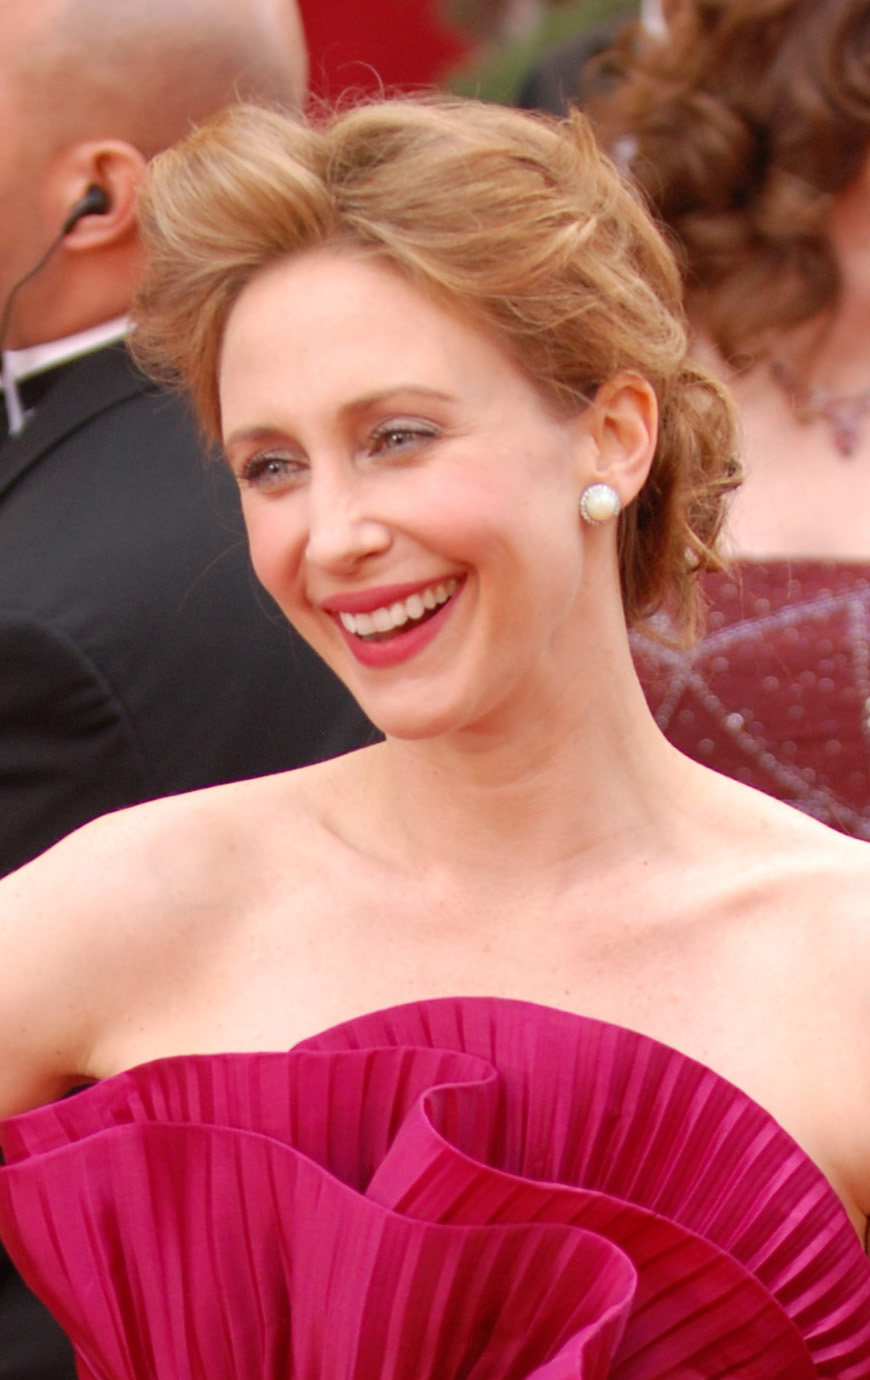 Forum on this topic: Gena Lee Nolin born November 29, 1971 (age 46), vera-farmiga/